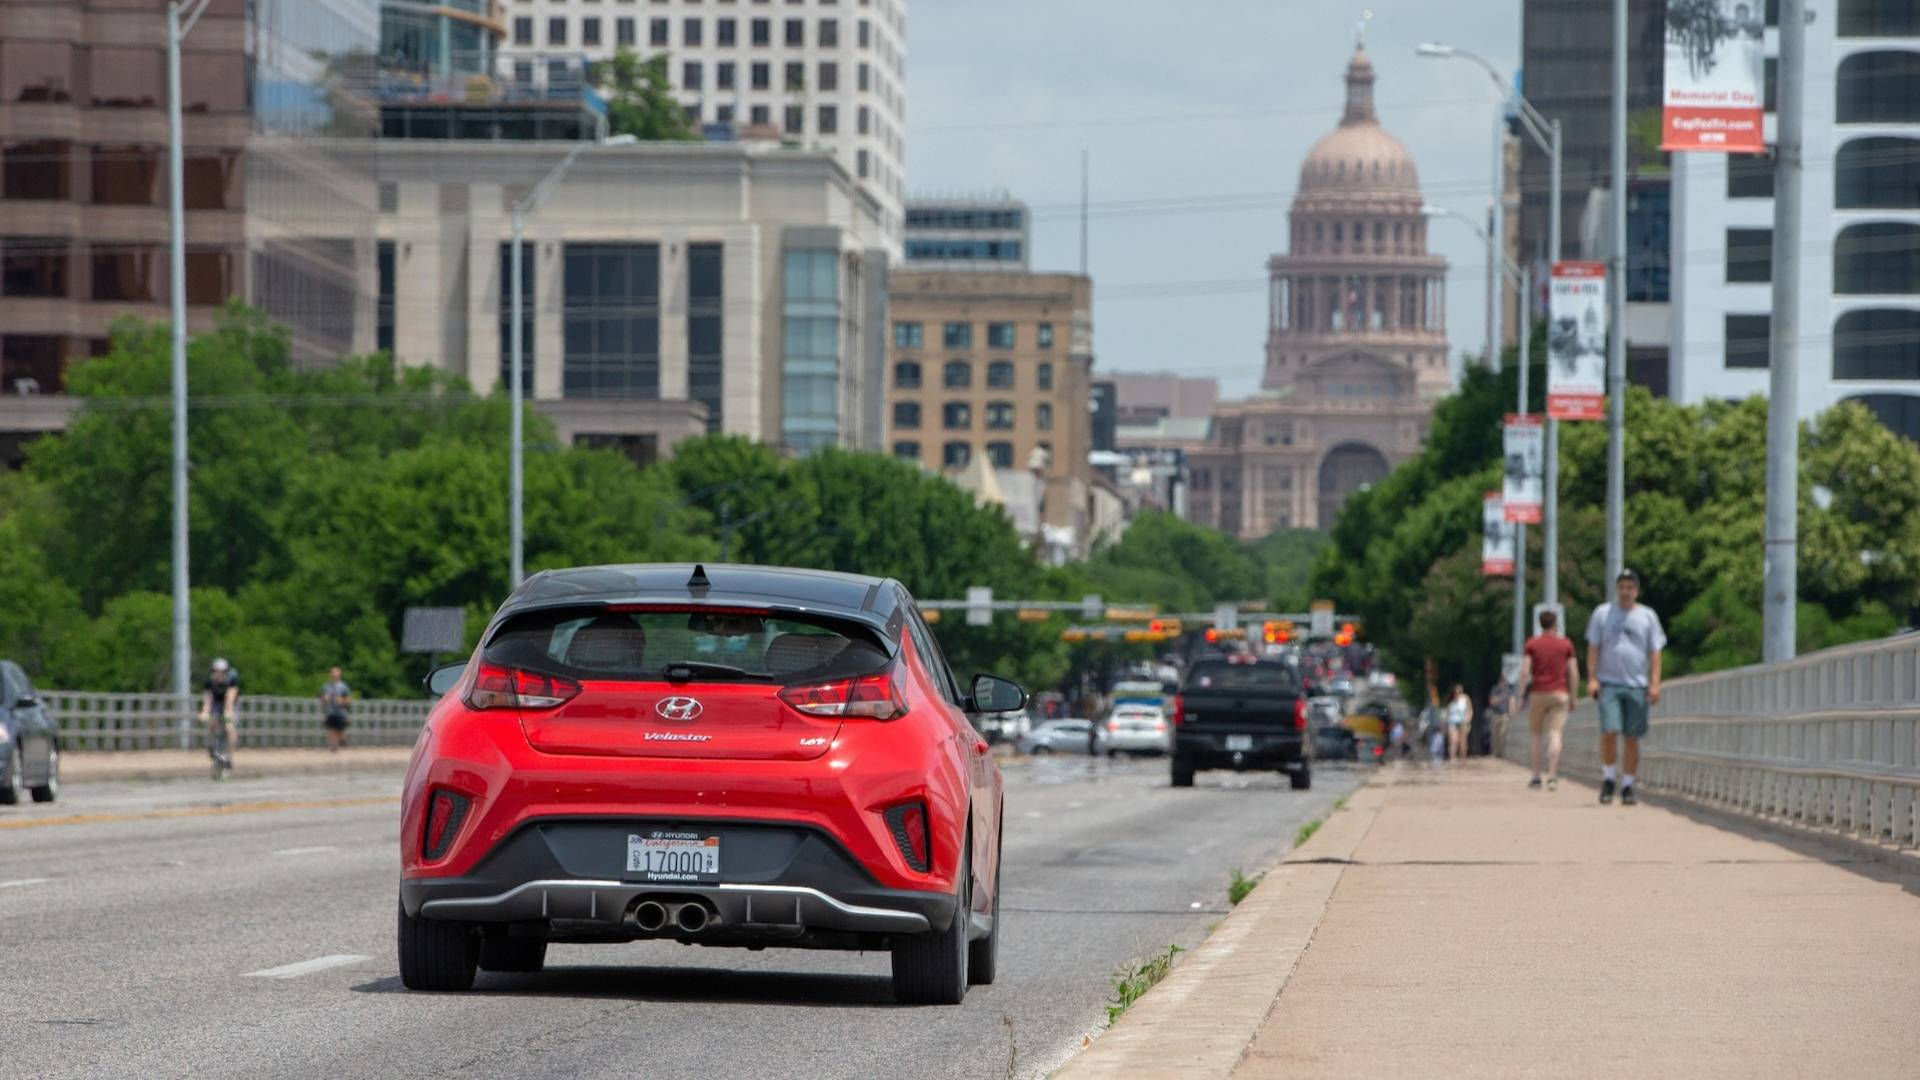 1617854241 53 The possibility of stopping the production of Hyundai Wolverine increased The possibility of stopping the production of Hyundai Wolverine increased; An end to a special Korean hatchback 4